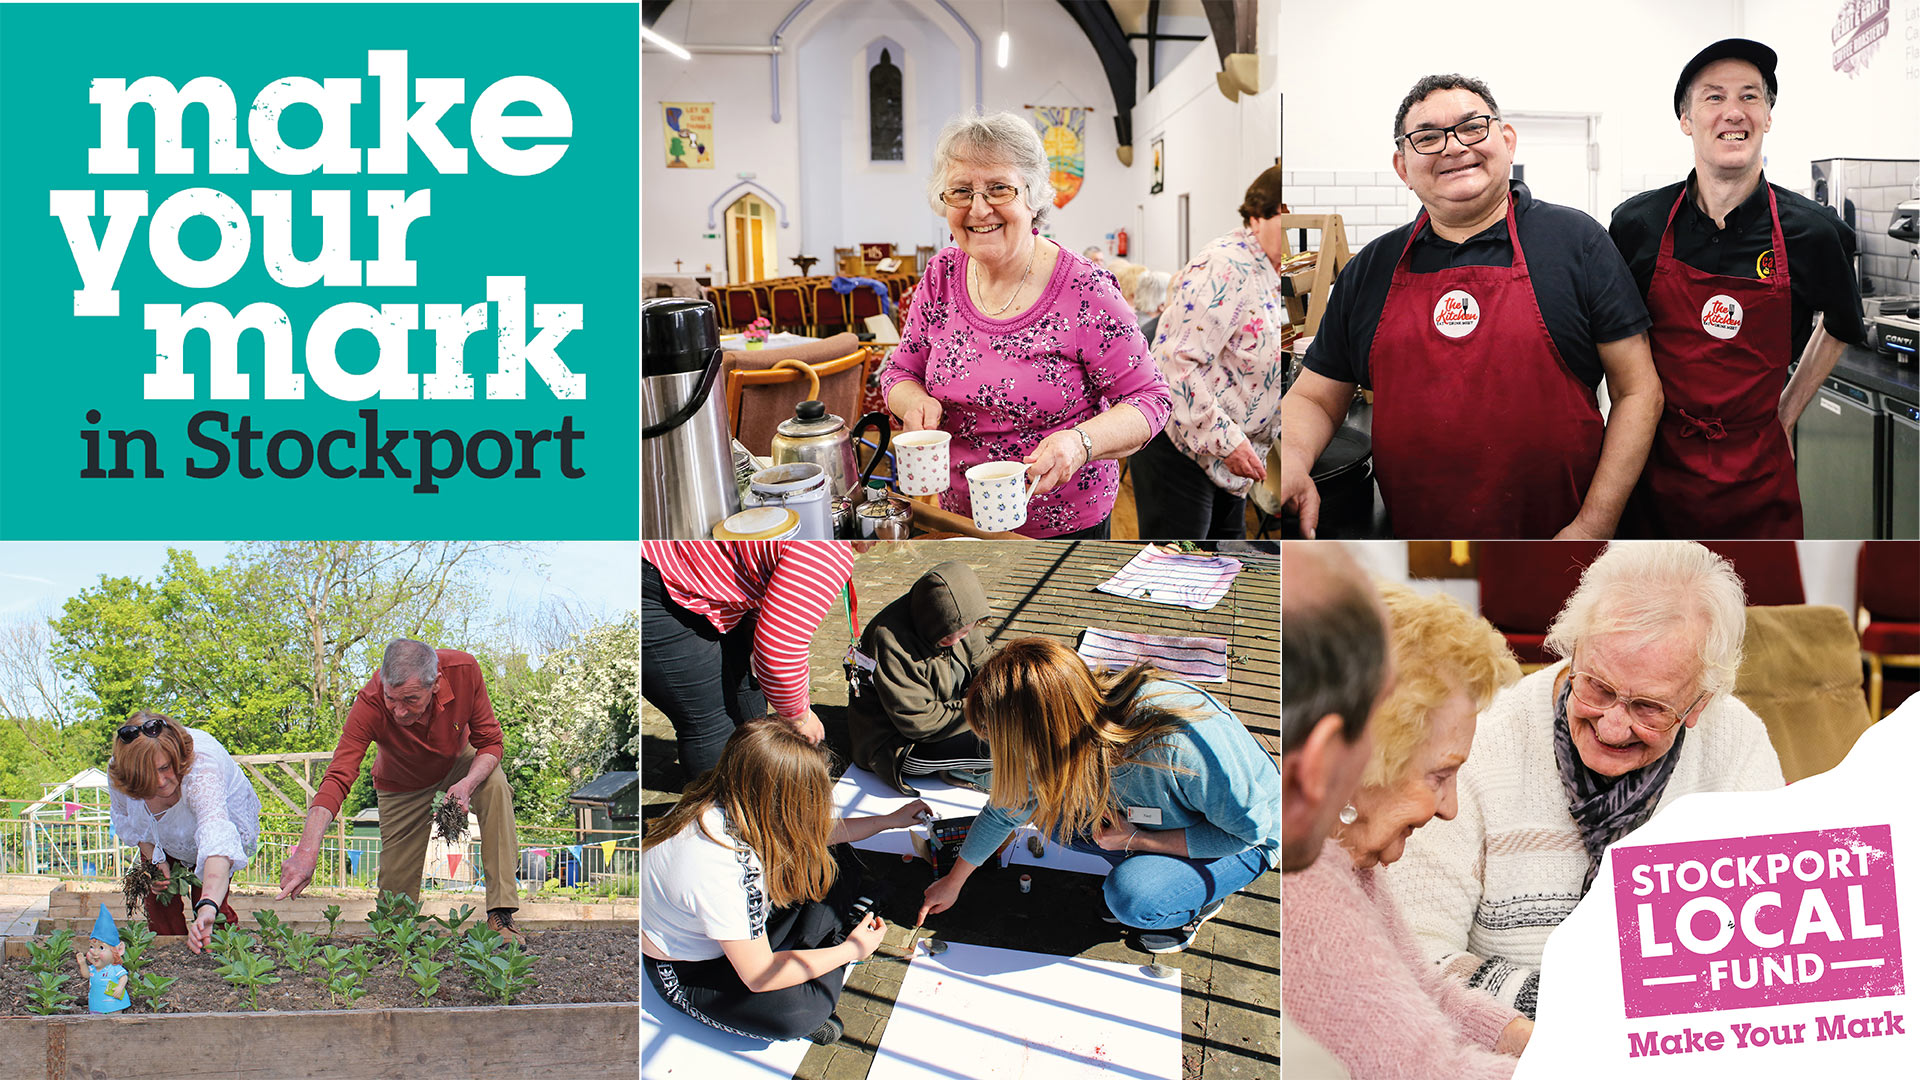 Stockport Local Fund opens for applications next week